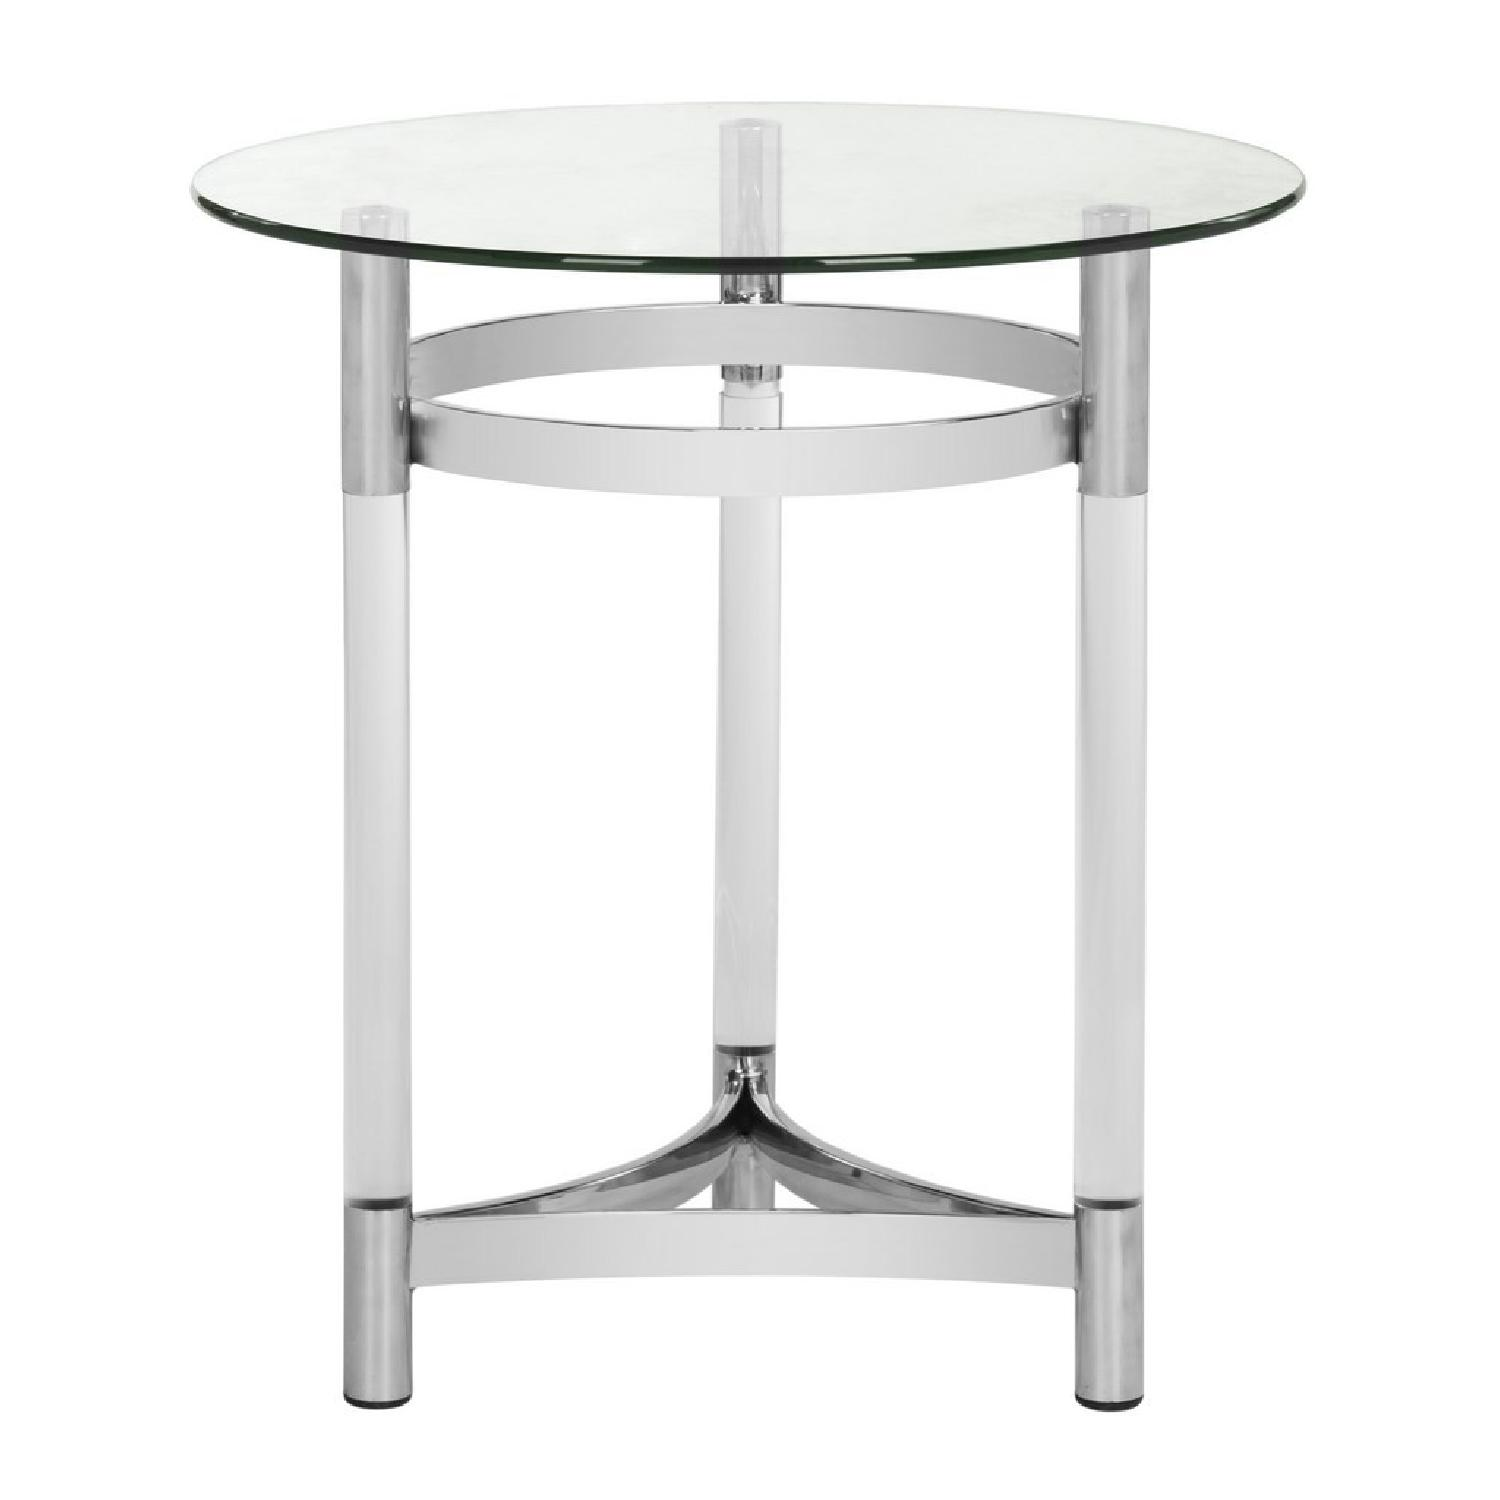 Safavieh Letty Round Acrylic End Table